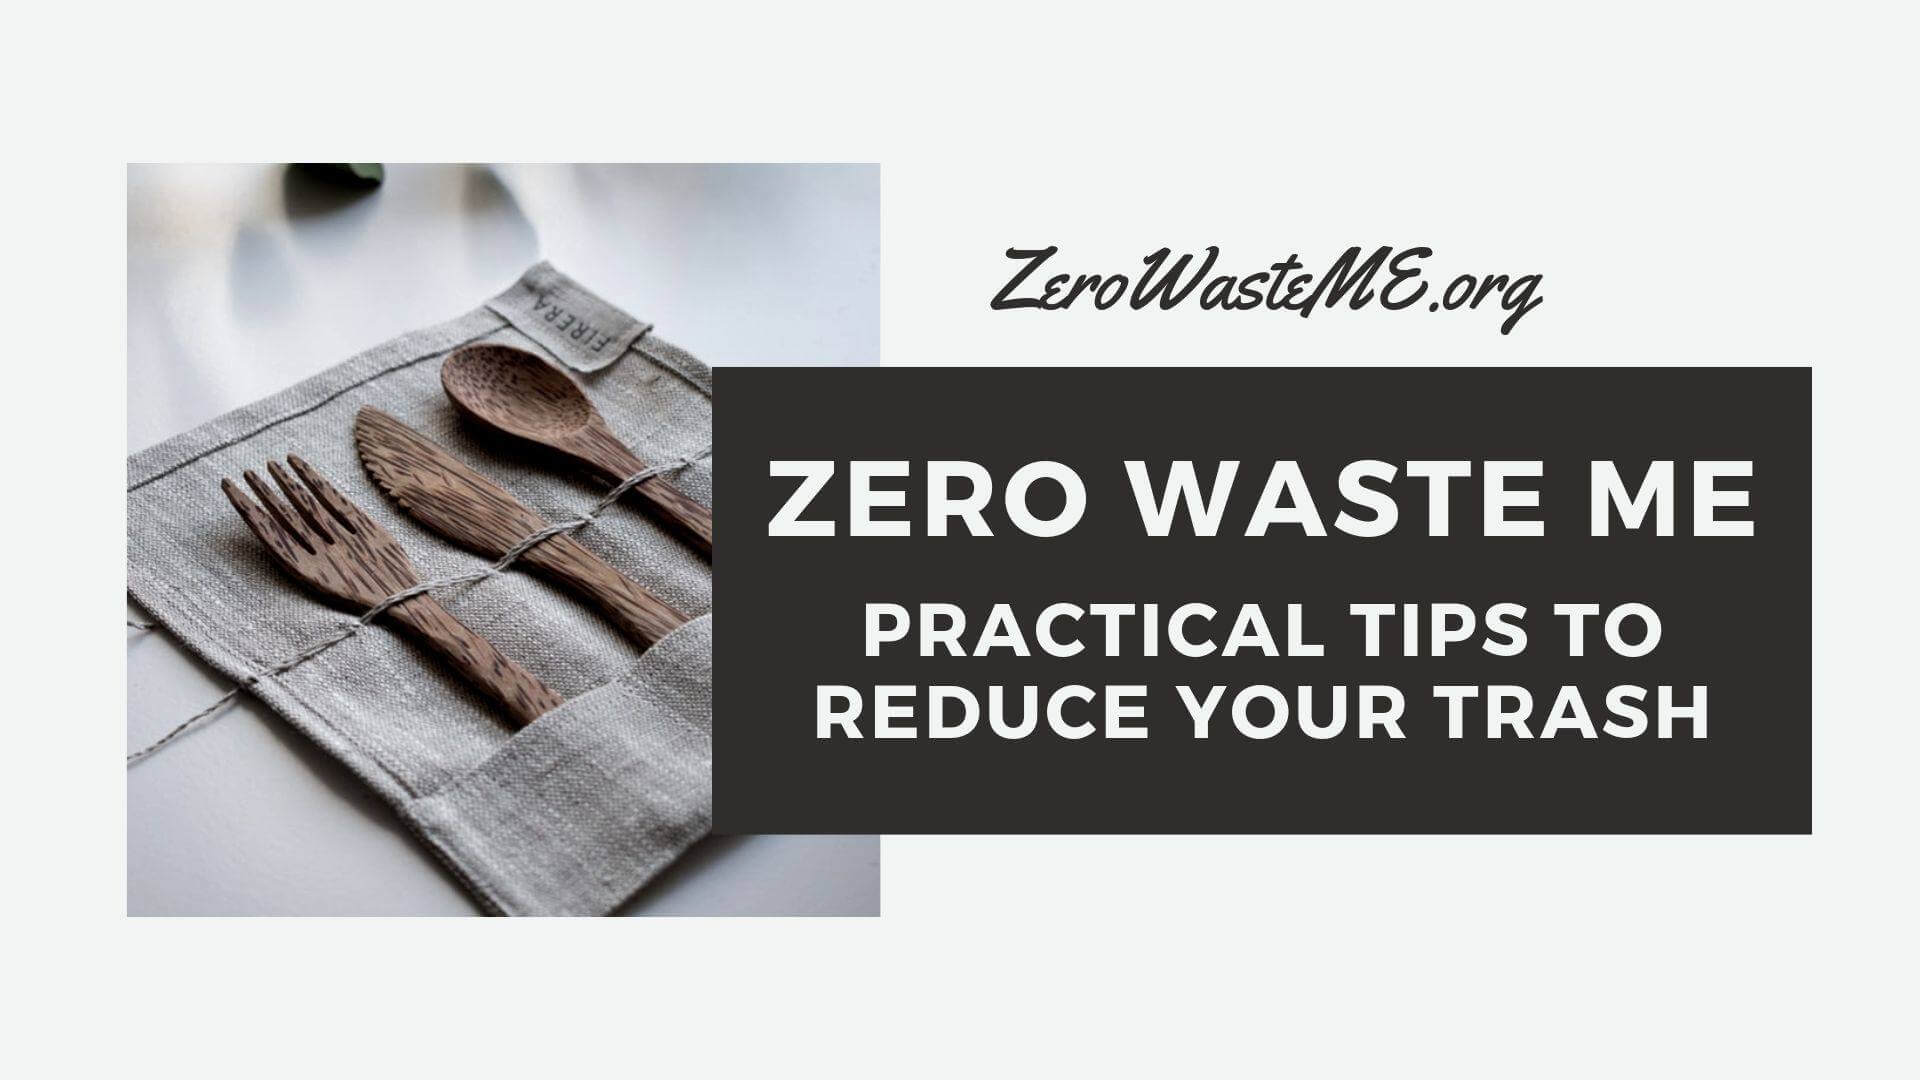 Freeport Community Library - Zero Waste ME: Practical Tips to Reduce Your Trash